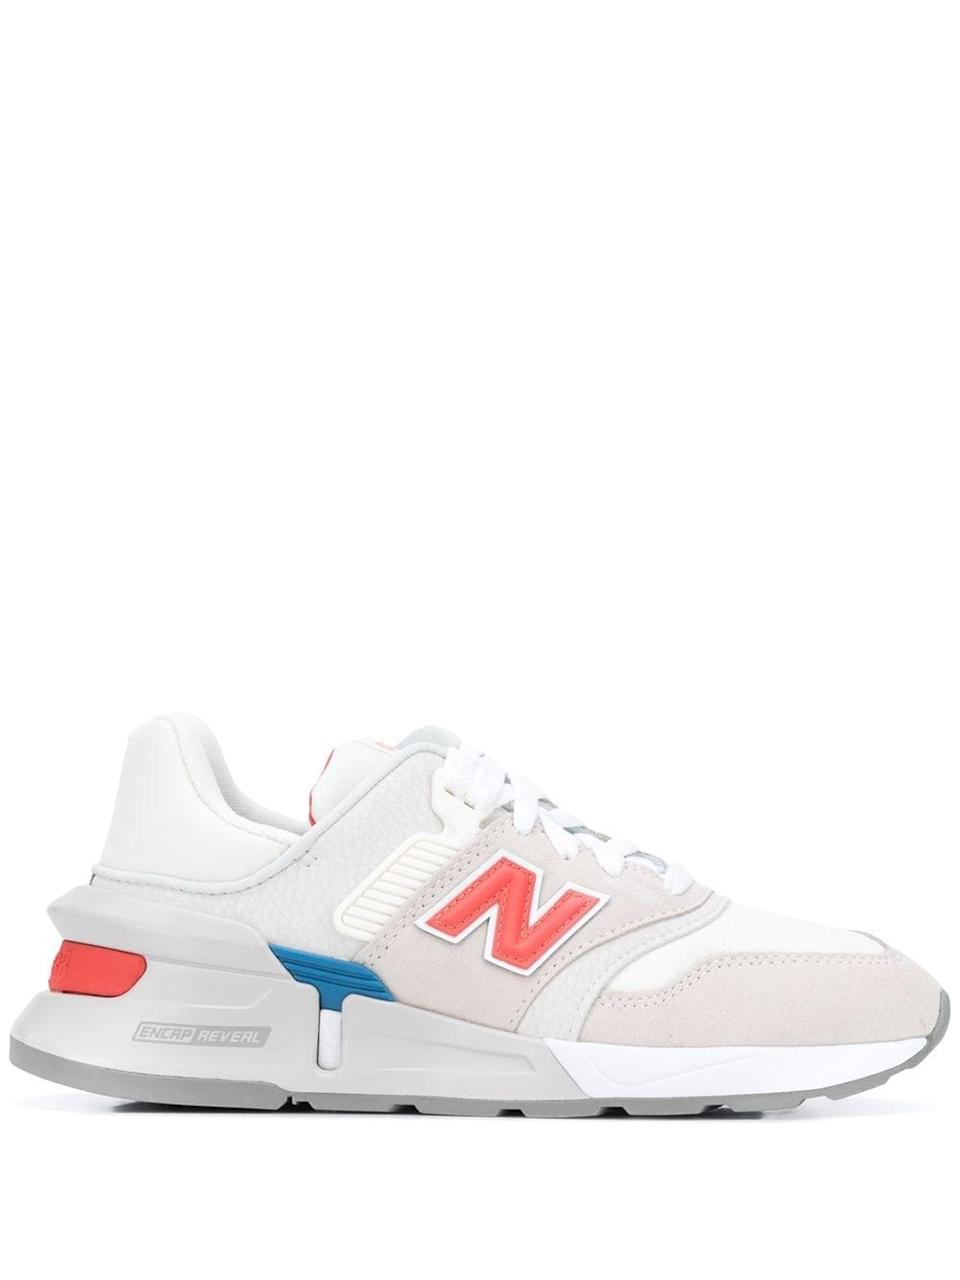 """<p>""""Living in sneakers isn't going to change anytime soon, so I'm building my collection accordingly. These <span>New Balance 997 Sport Sneakers</span> ($107, originally $153) have just the right pops of color on a chunky, retro silhouette I love.""""</p>"""